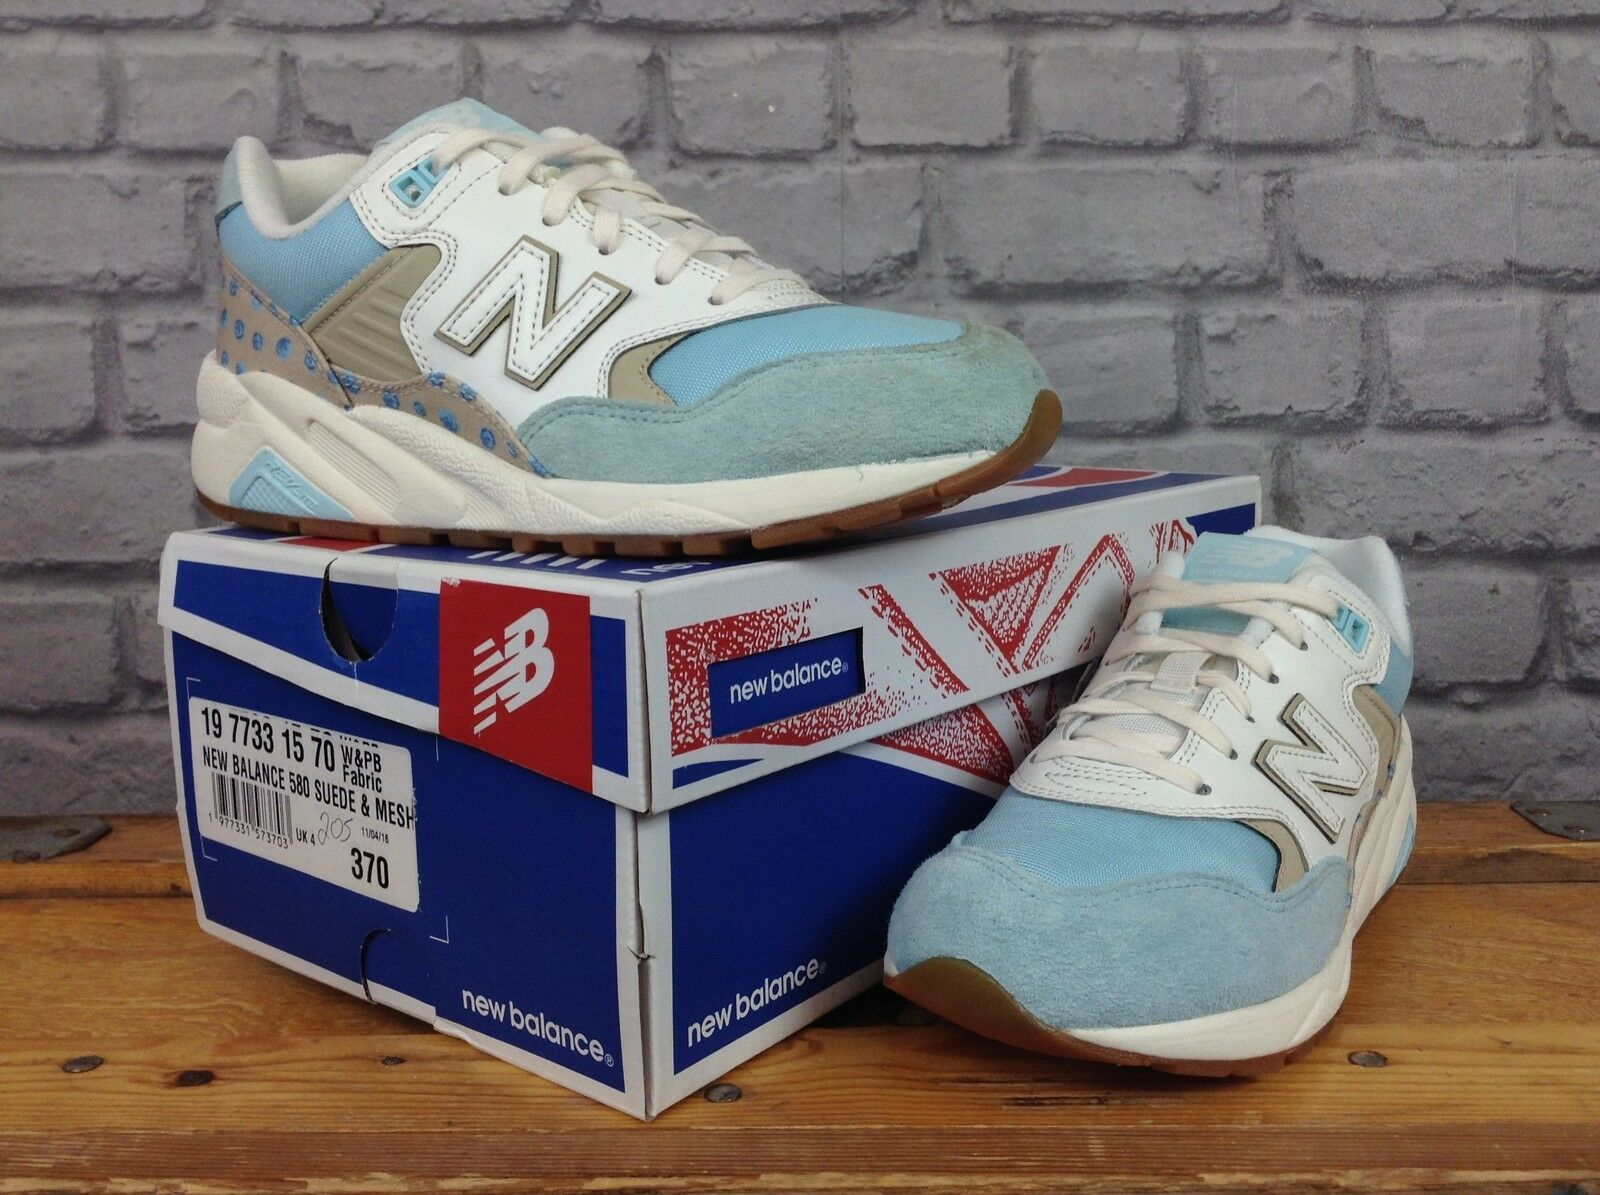 NEW BALANCE 580 LADIES WHITE PALE POLKA DOT blueE SUEDE TRAINER